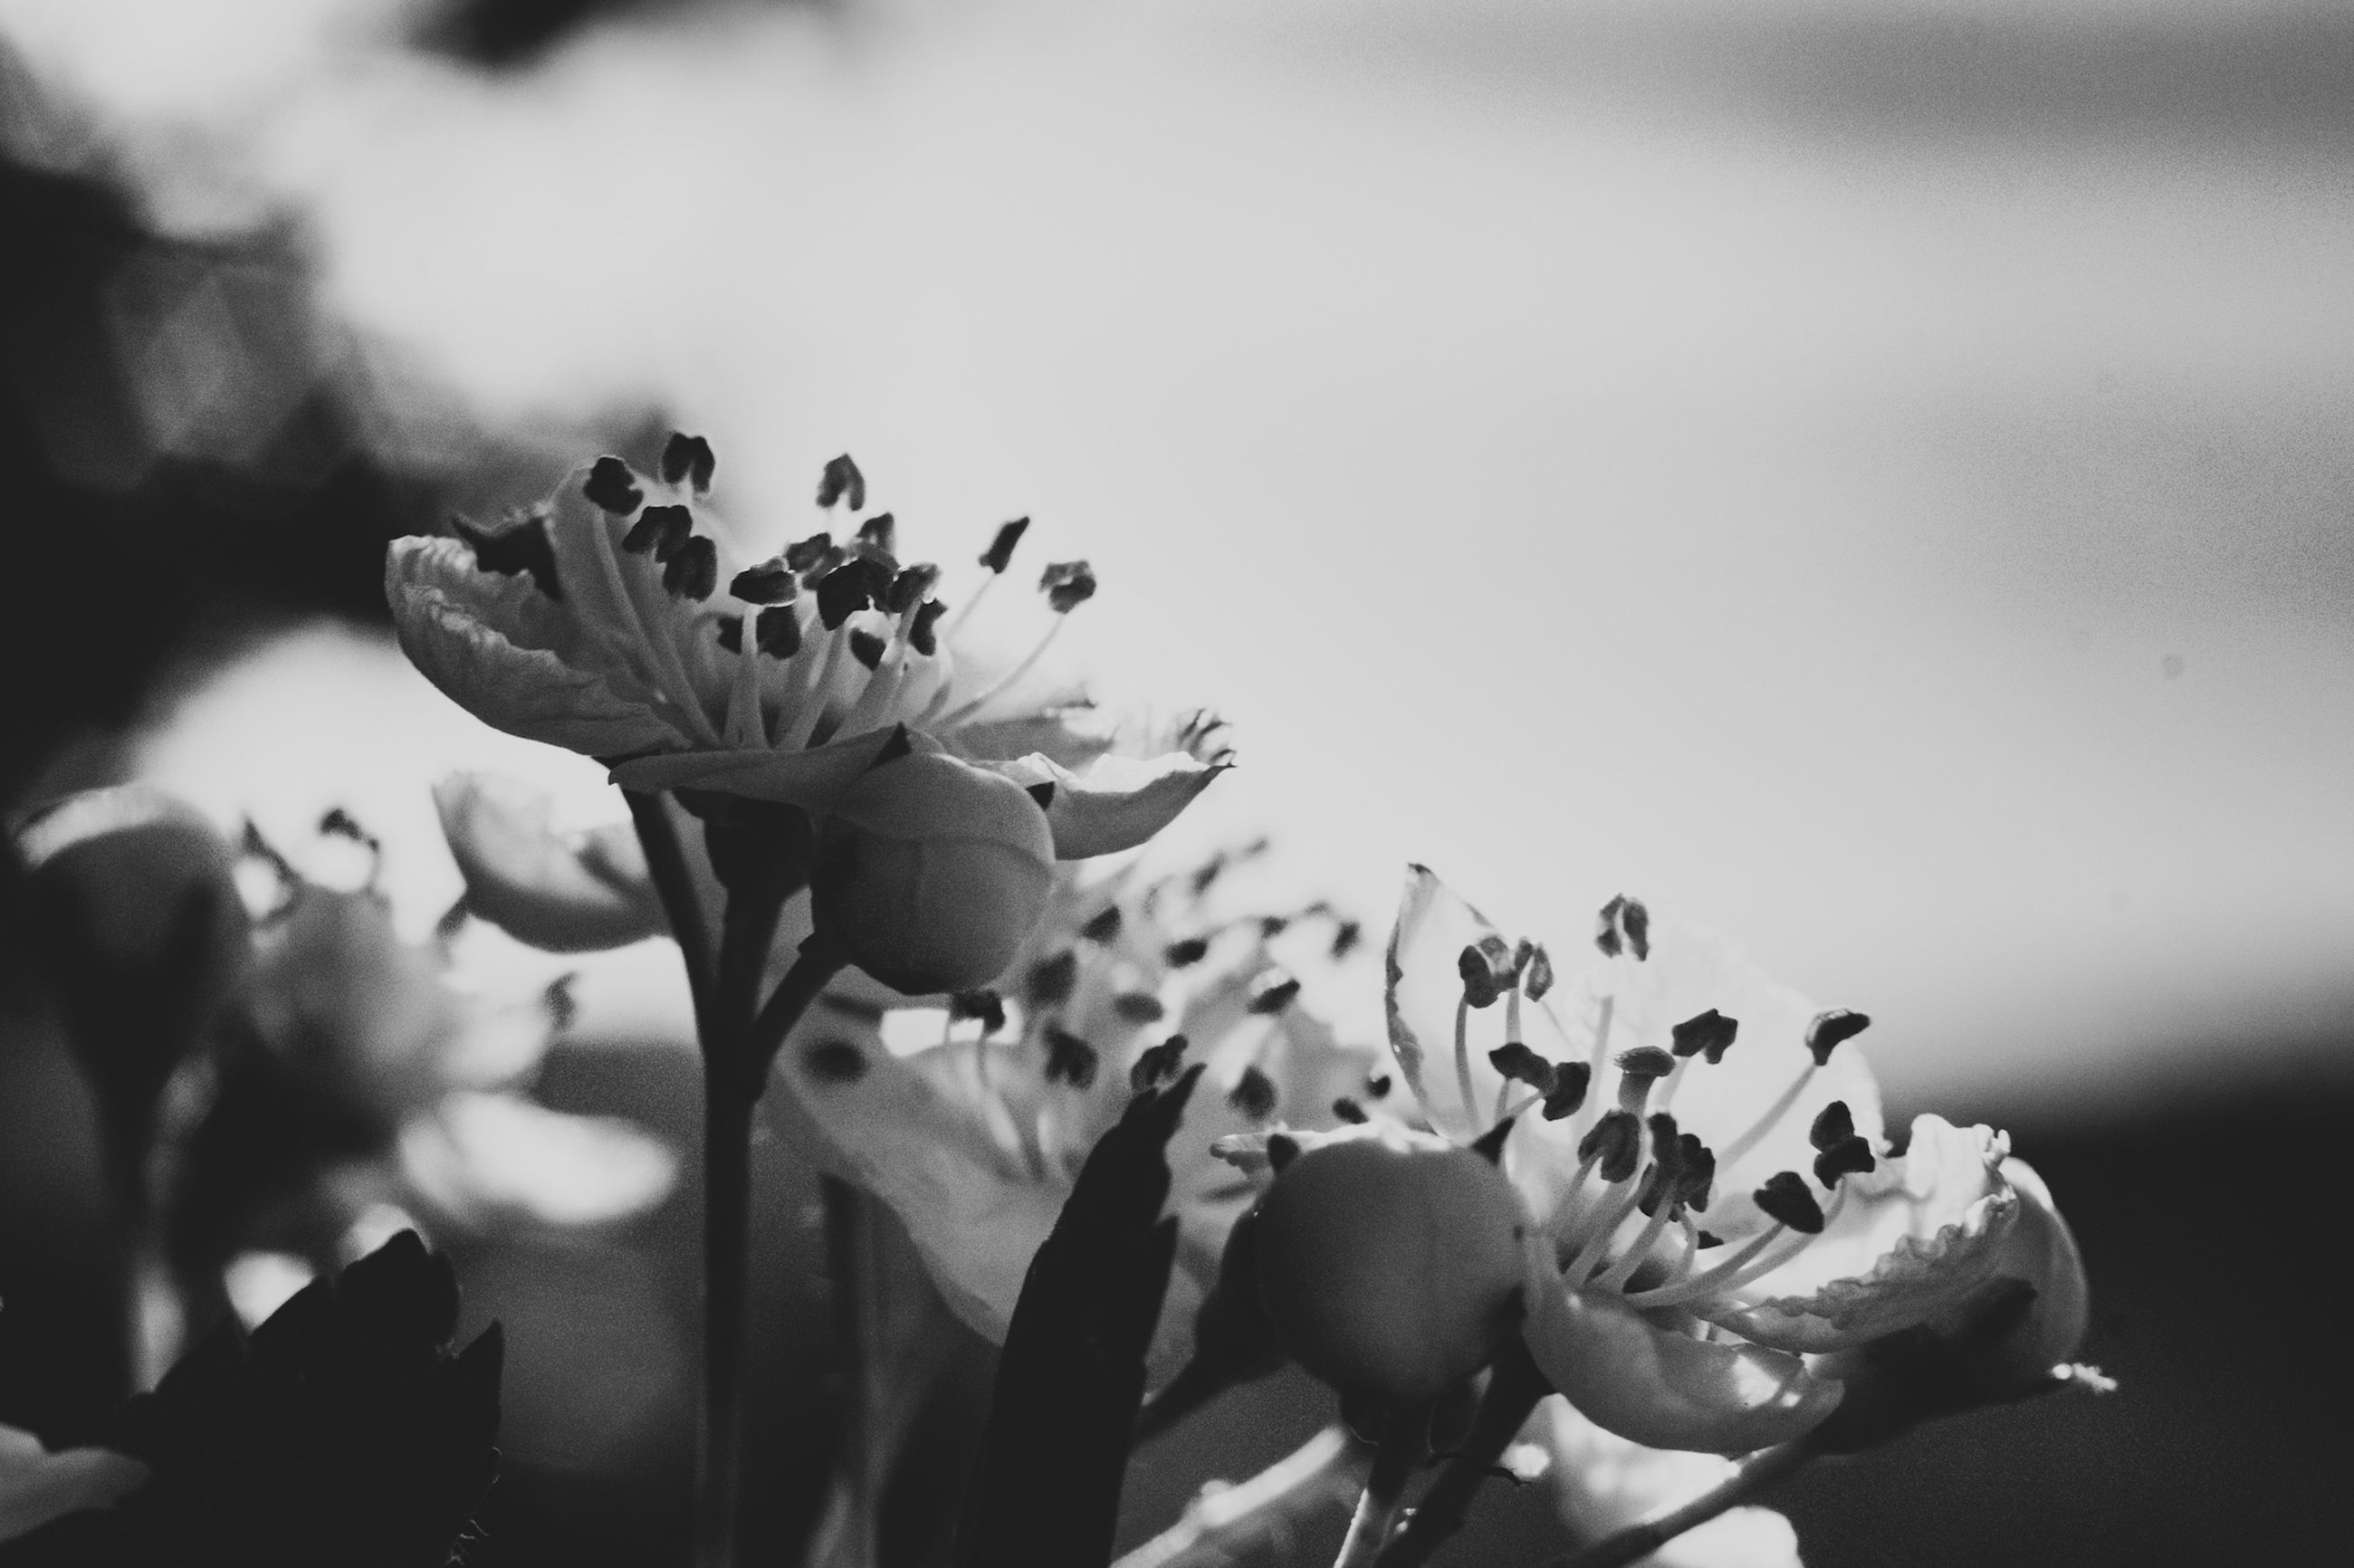 black and white, flower, black, flowering plant, plant, white, monochrome photography, beauty in nature, monochrome, freshness, nature, close-up, macro photography, fragility, petal, growth, flower head, inflorescence, spring, darkness, no people, leaf, outdoors, still life photography, focus on foreground, selective focus, blossom